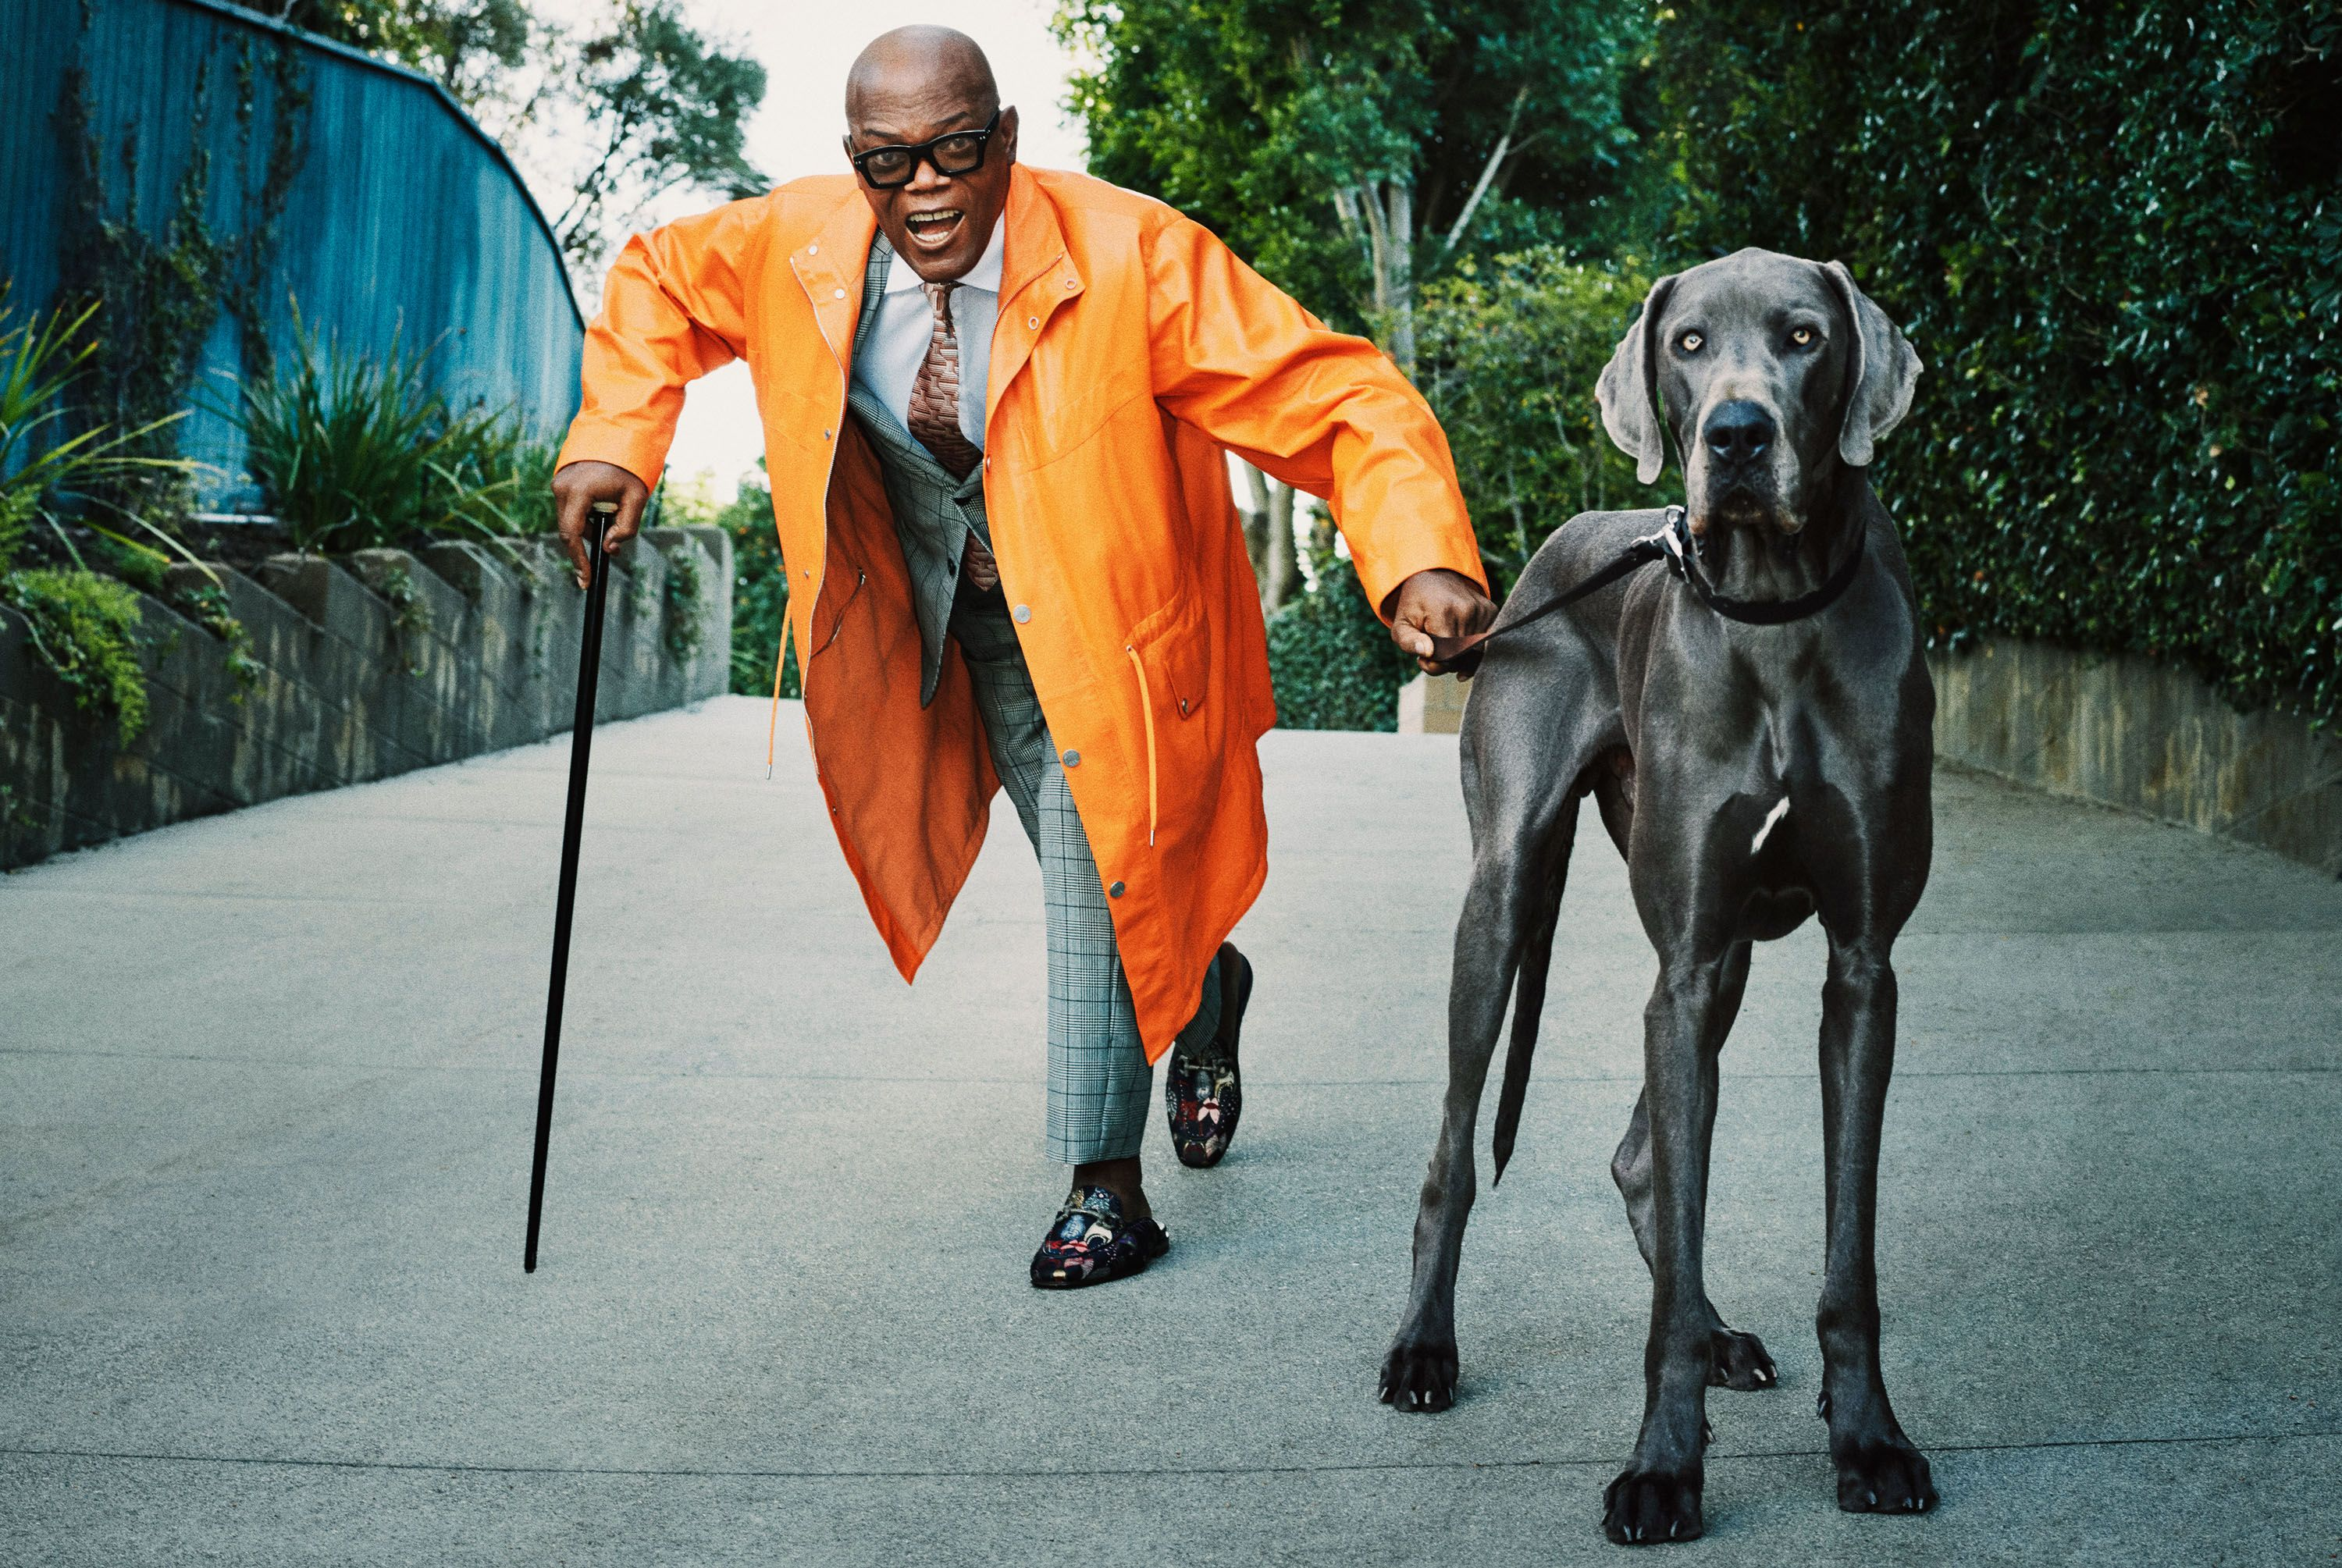 Samuel L. Jackson Operates Like He Owns the Place. (He Does.)